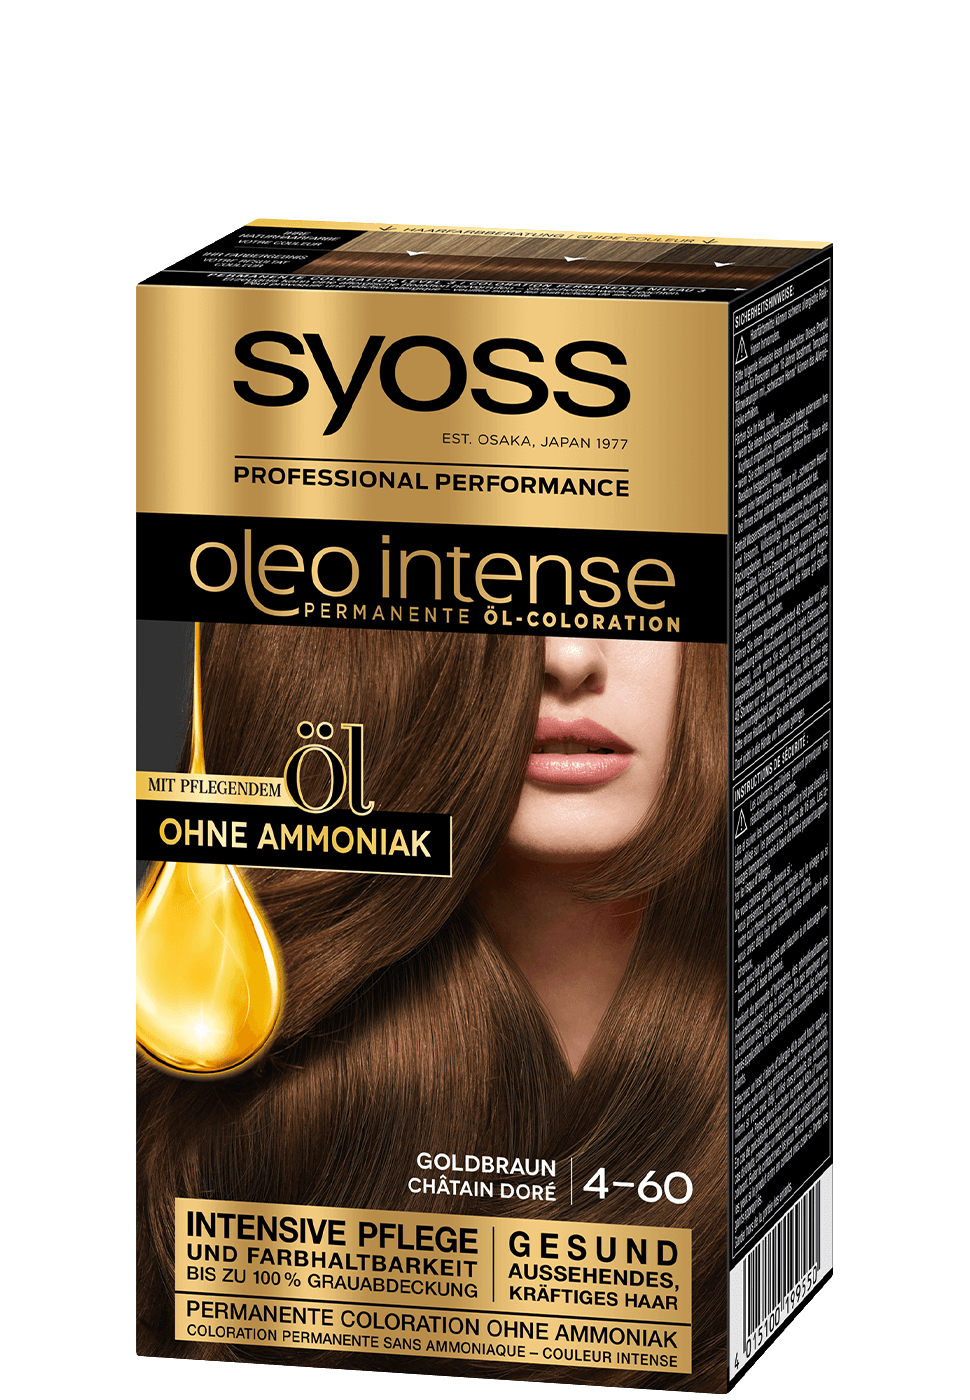 syoss_de_oleo_intense_4_60_goldbraun_970x1400